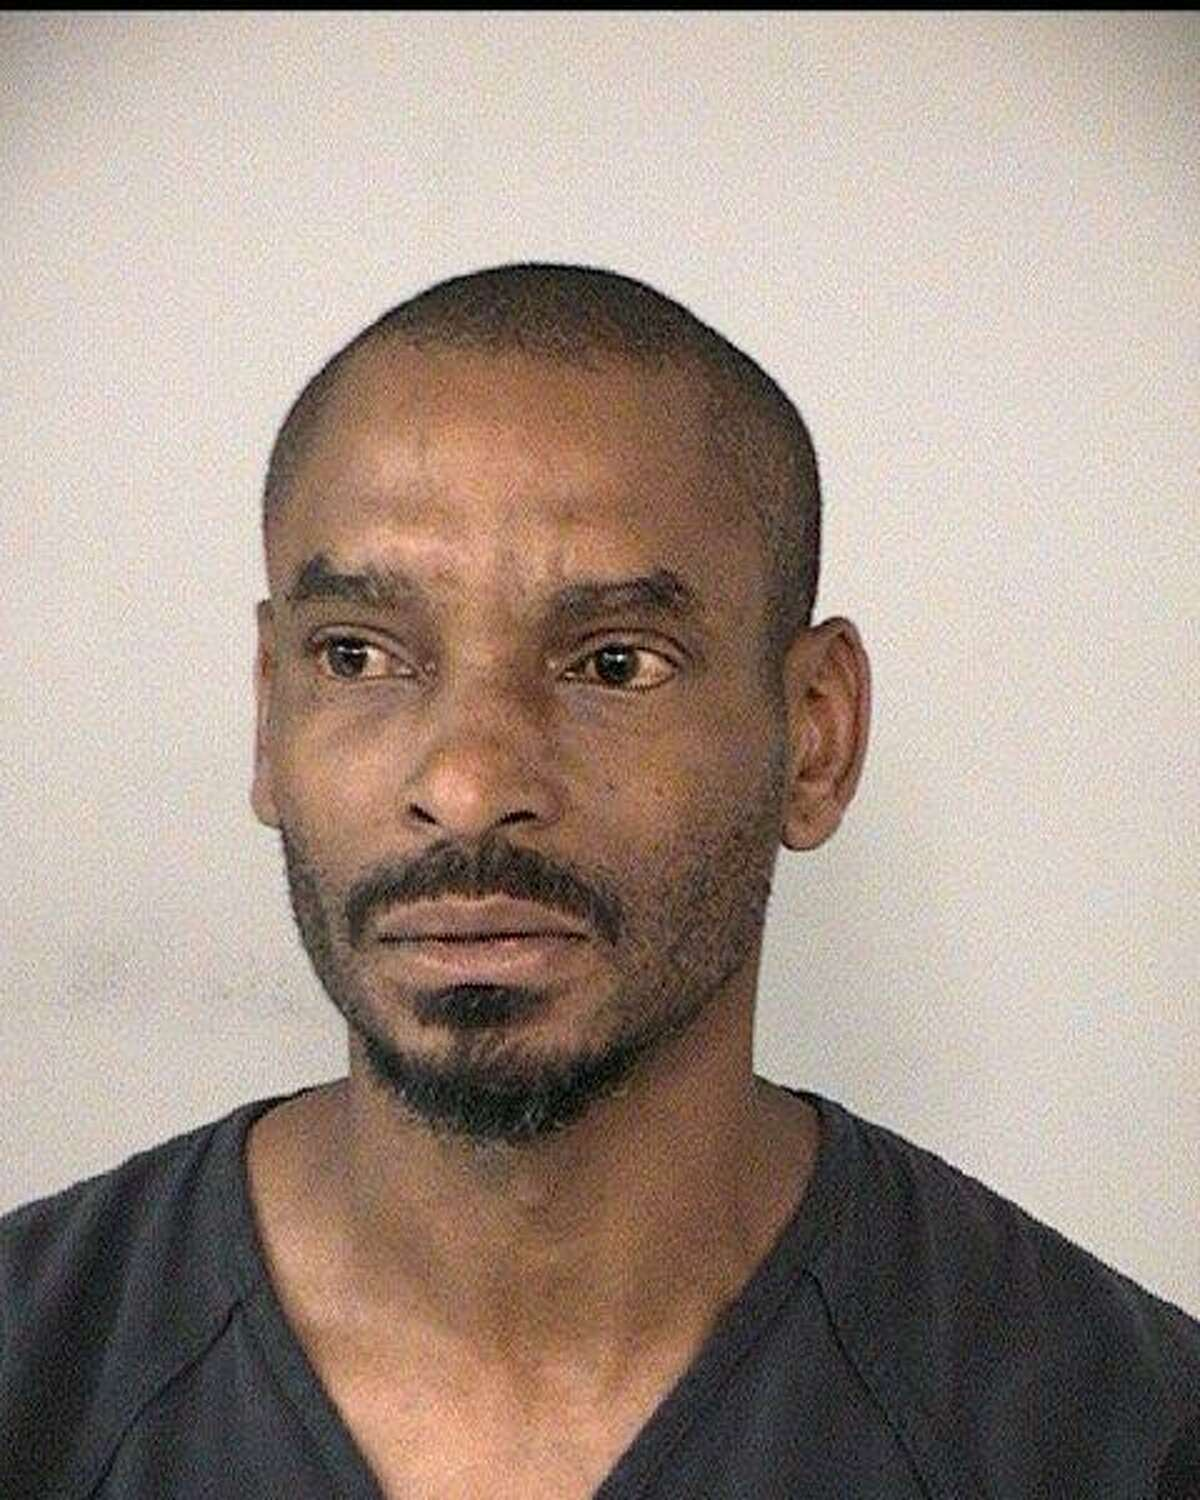 Darnell Williams, 44, of Arlington, has been arrested in connection with an early morning stabbing on Tuesday, May 25, 2021, in the the 8700 block of Early Morning Way, in the Rosharon area of Fort Bend County.Williams has been booked into the Fort Bend County Jail and charged with Aggravated Assault.